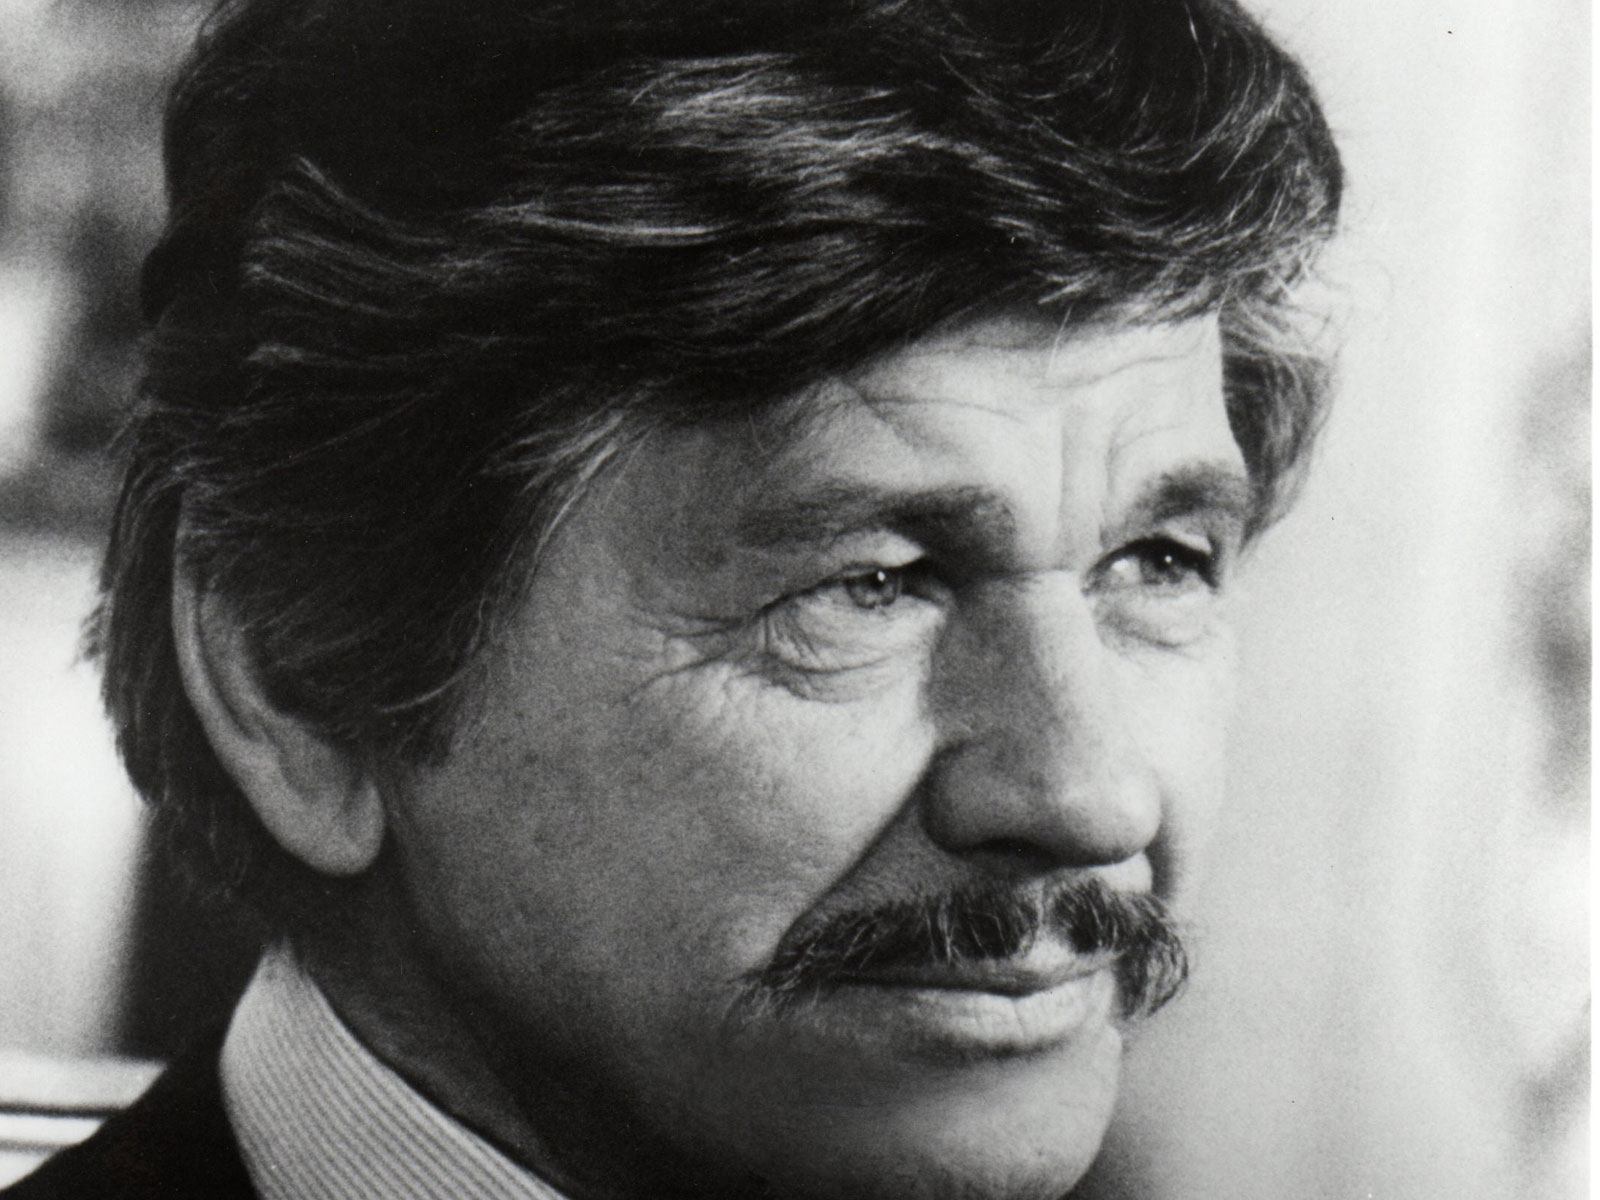 Charles-Bronson Unseen Images, Charles-Bronson Unseen Wallpapers, Charles-Bronson Unseen Pics, Photos